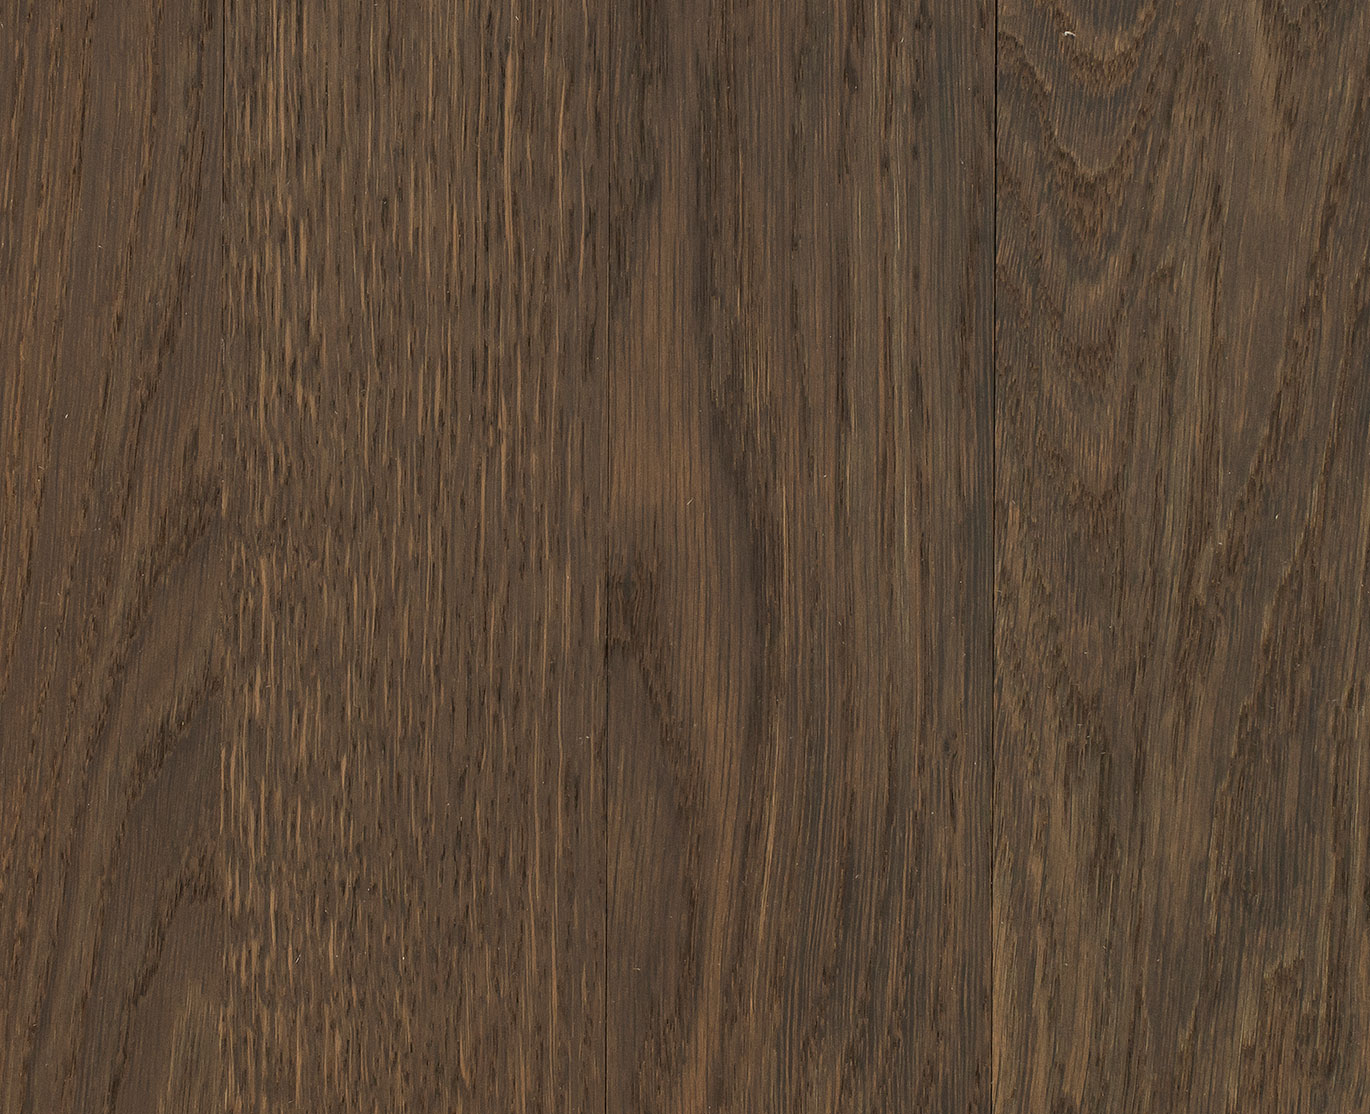 Talsooncom Sofabord Smoked Oak Design Inspiration